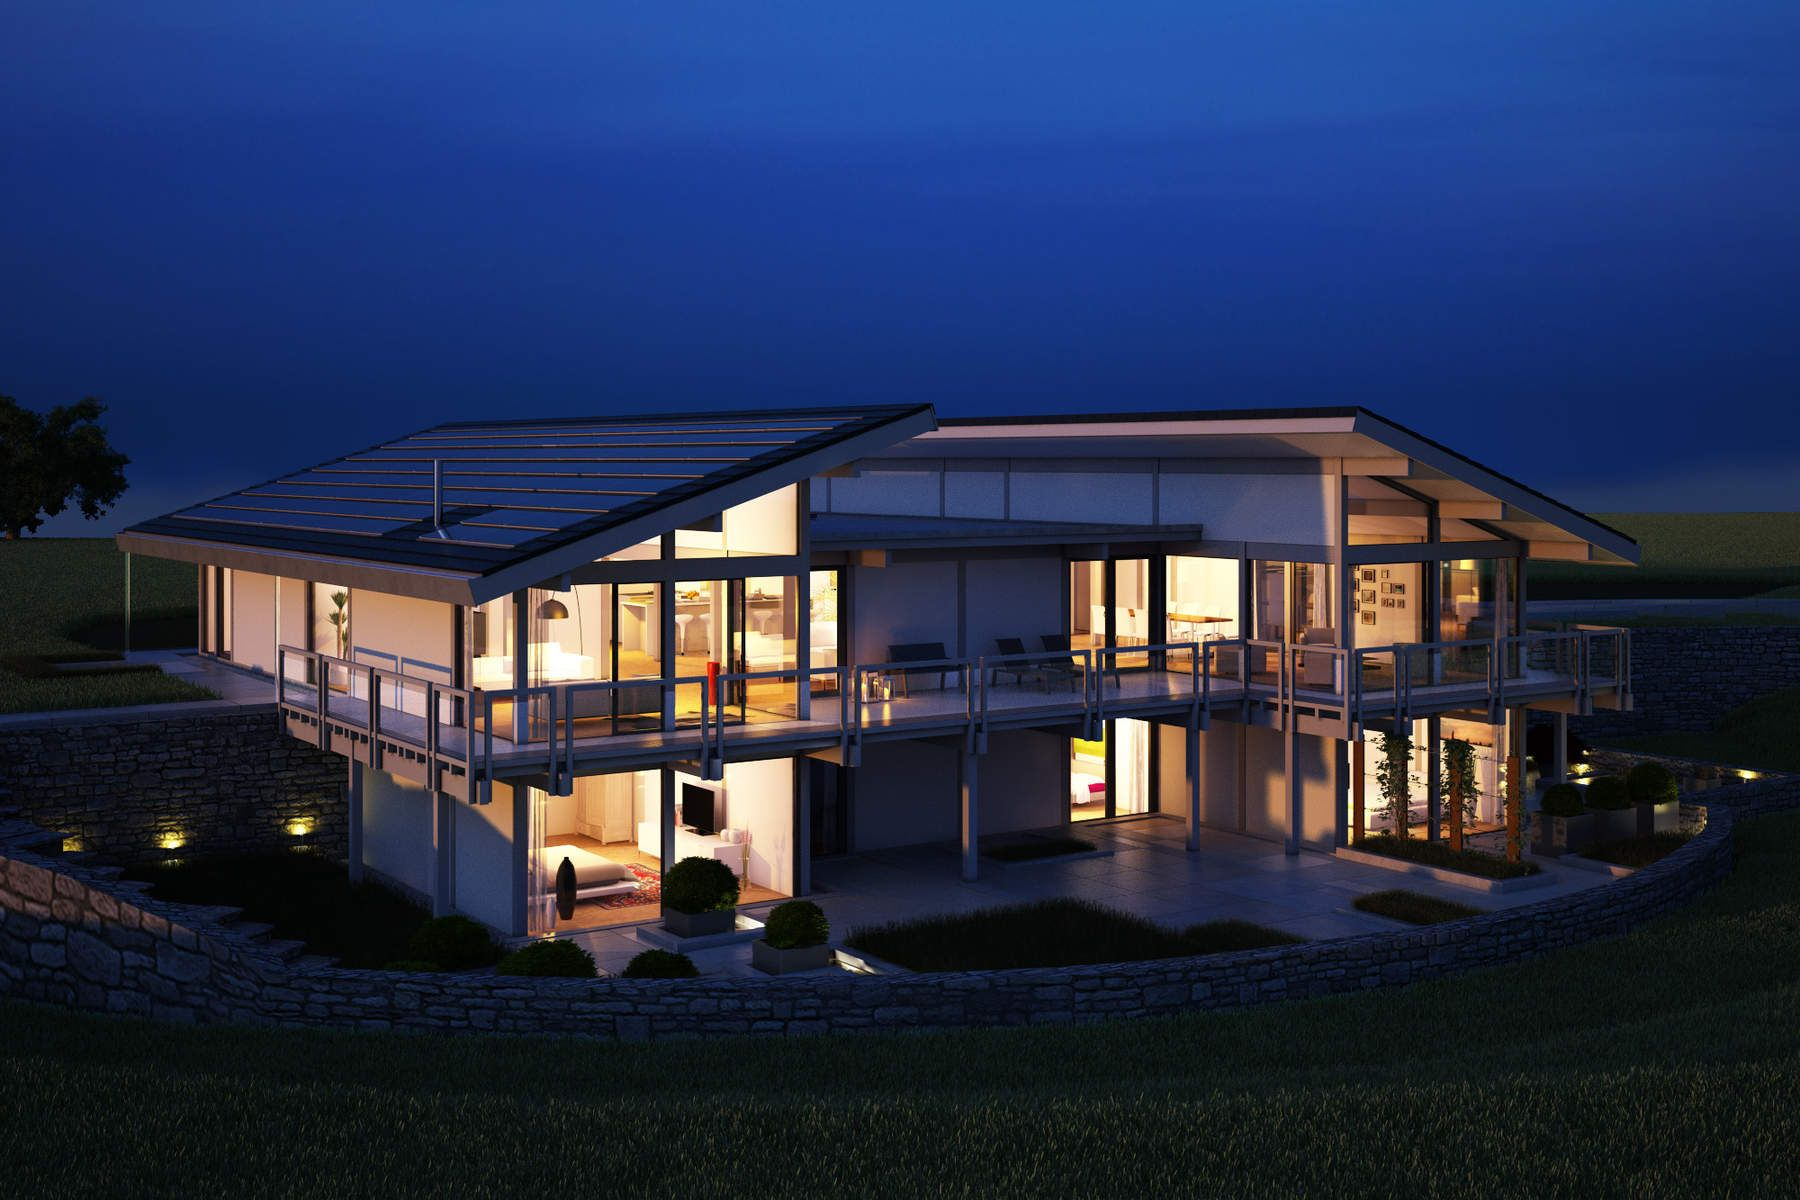 Single Family Homes for Active at THE BUTTERFLY BY DAVINCI - RENDERING Bridgehampton, New York 11932 United States